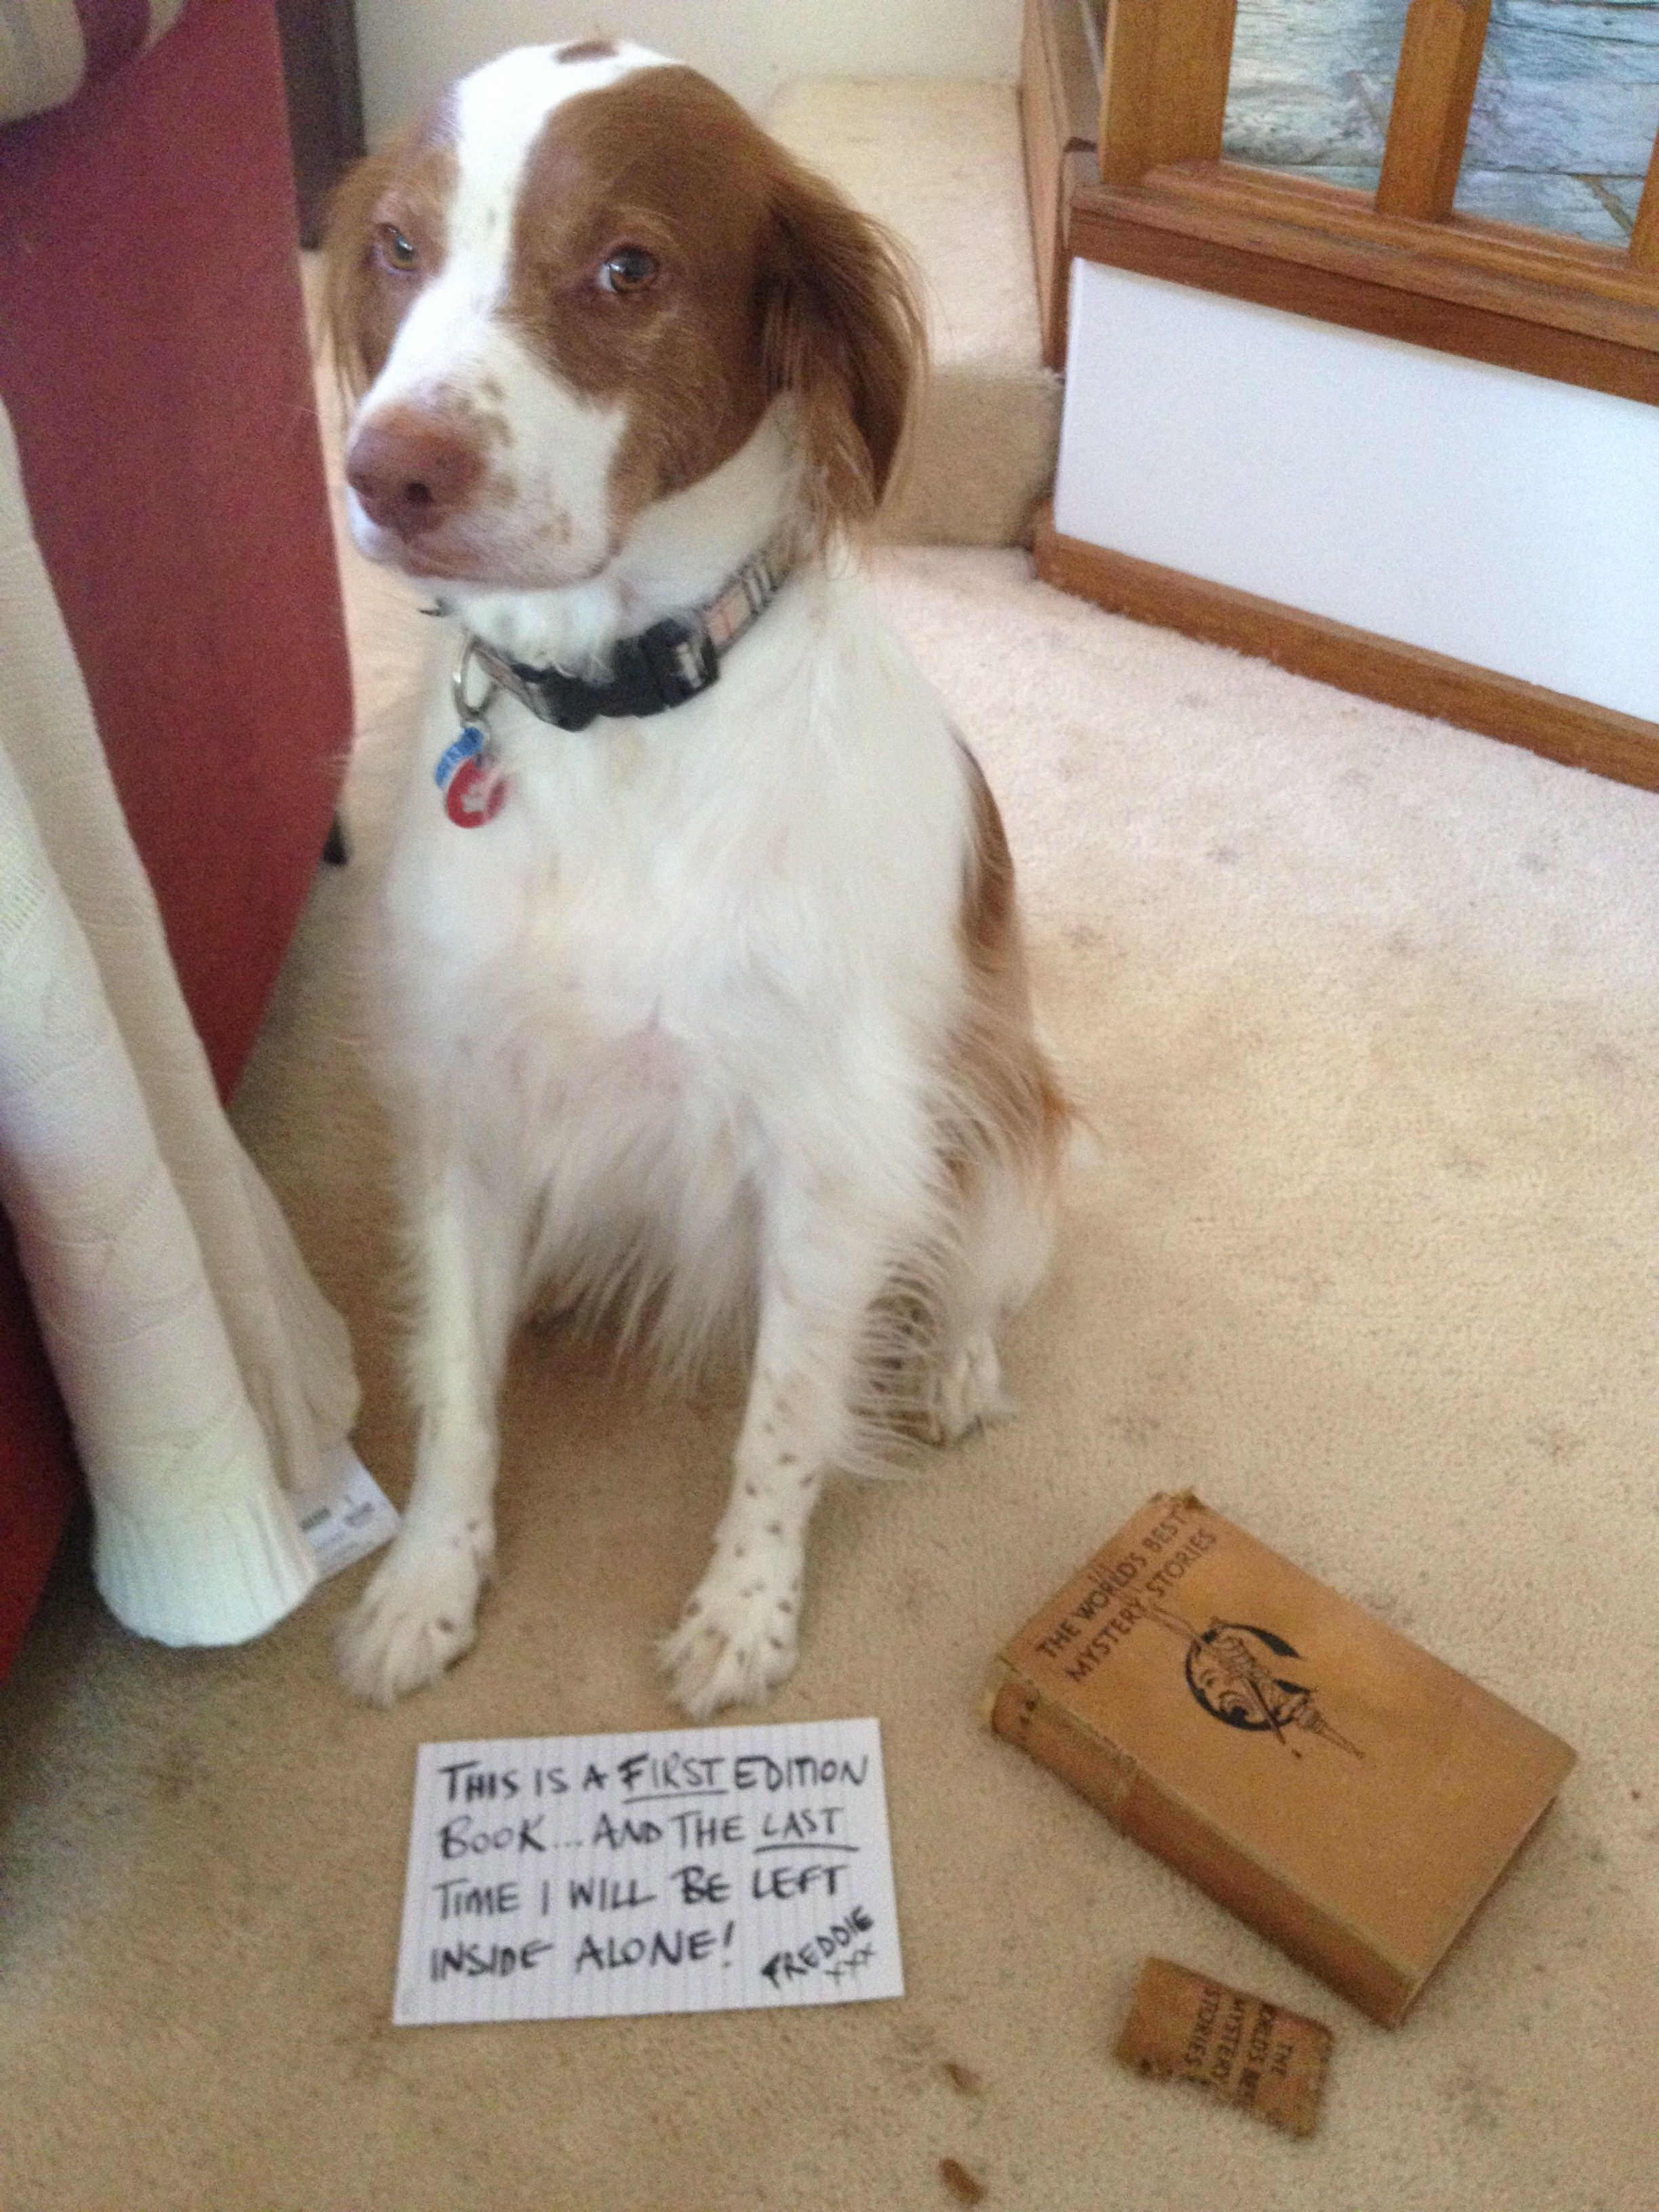 Dog training tips for a wellbehaved furry friend continue with